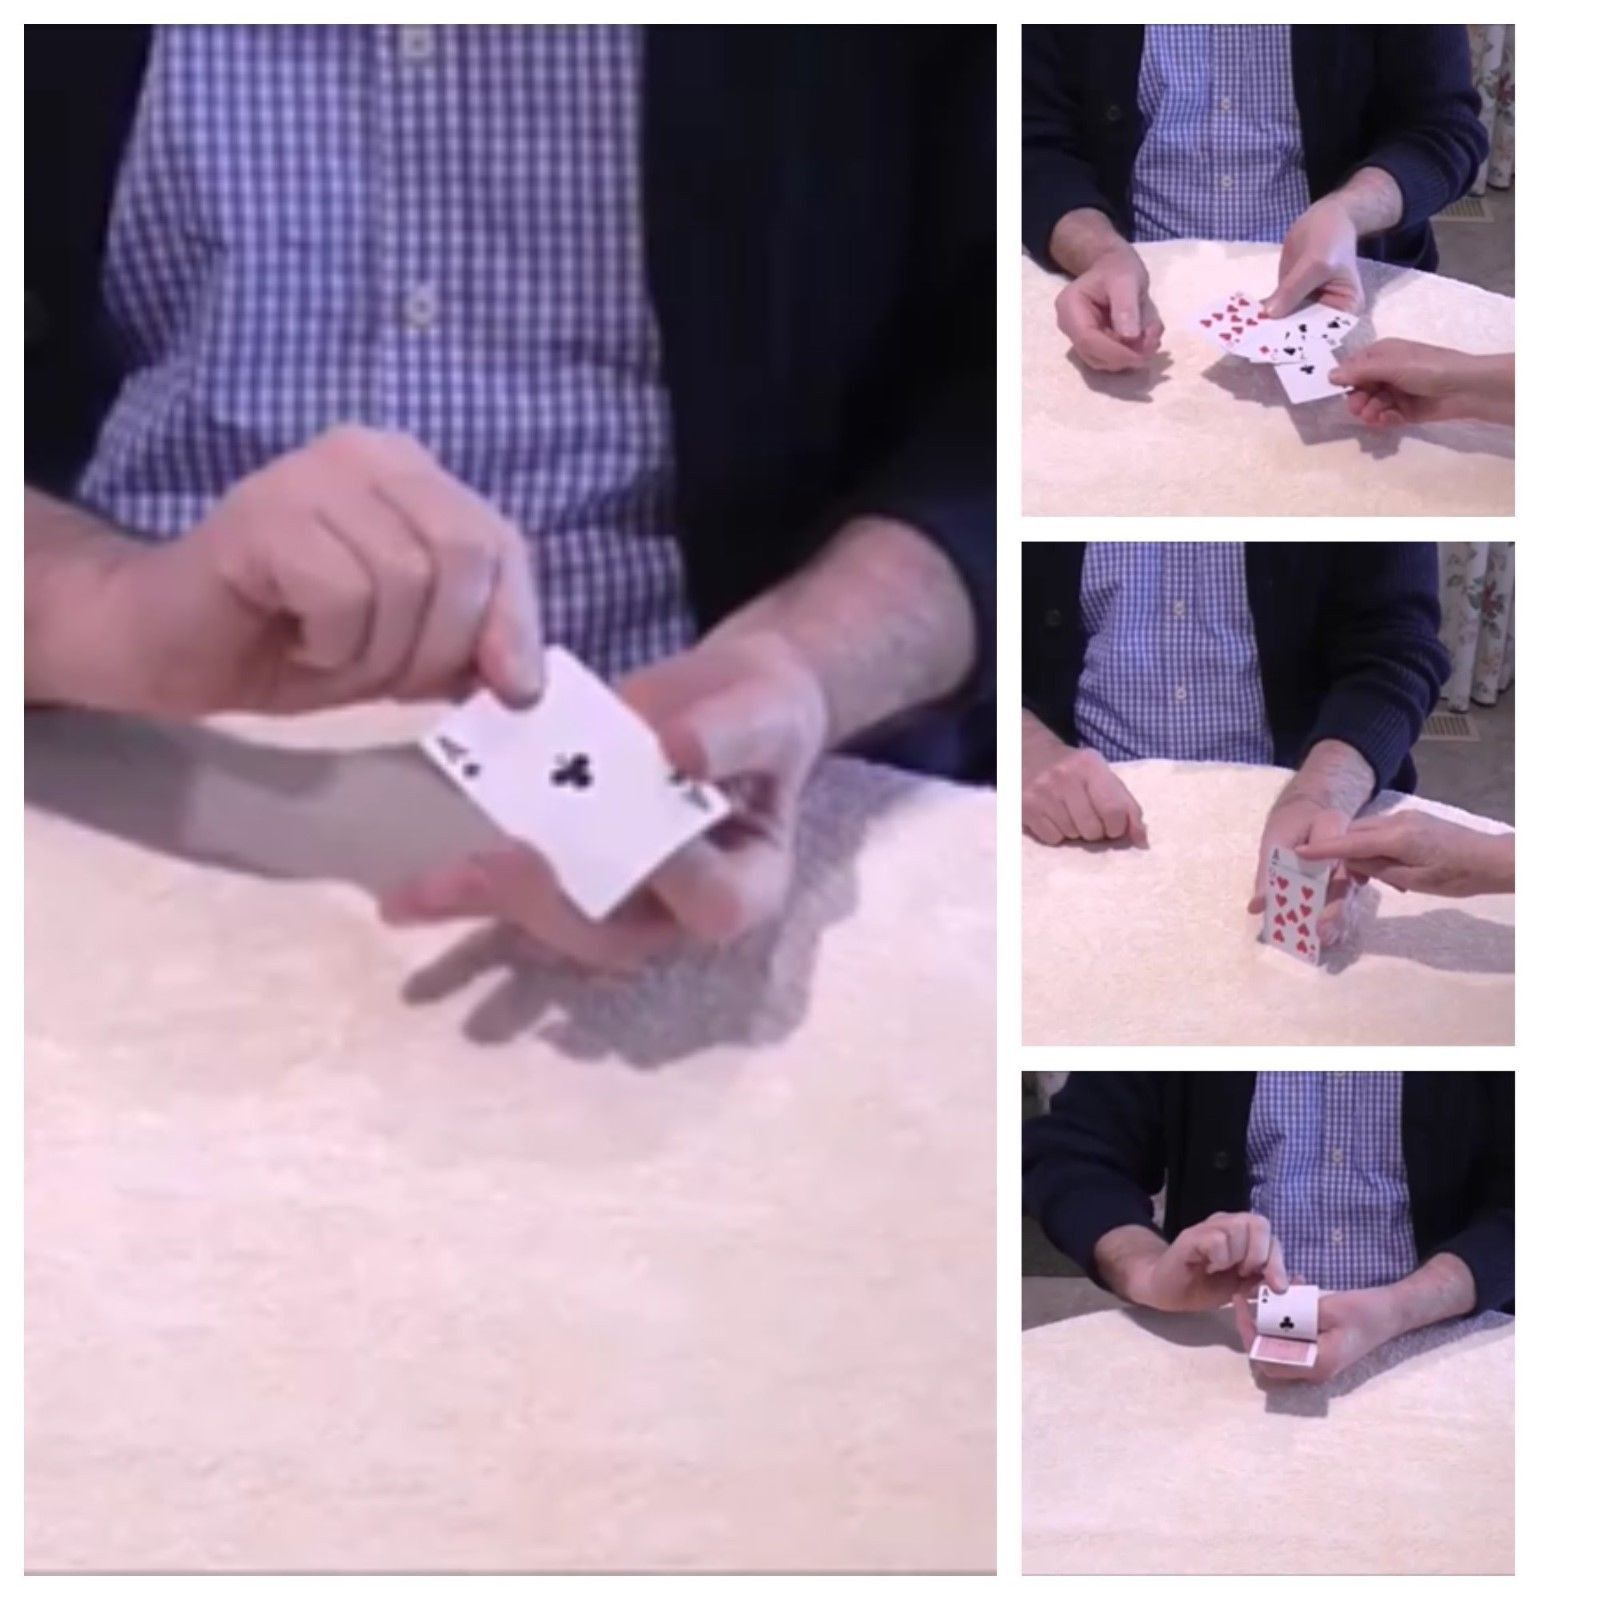 Impossible Jumping Card Aud 6 45 Today S Feature Magic Trick In Stock Now Quick Easy Access Magic Card Tricks Card Tricks Magic Tricks For Kids